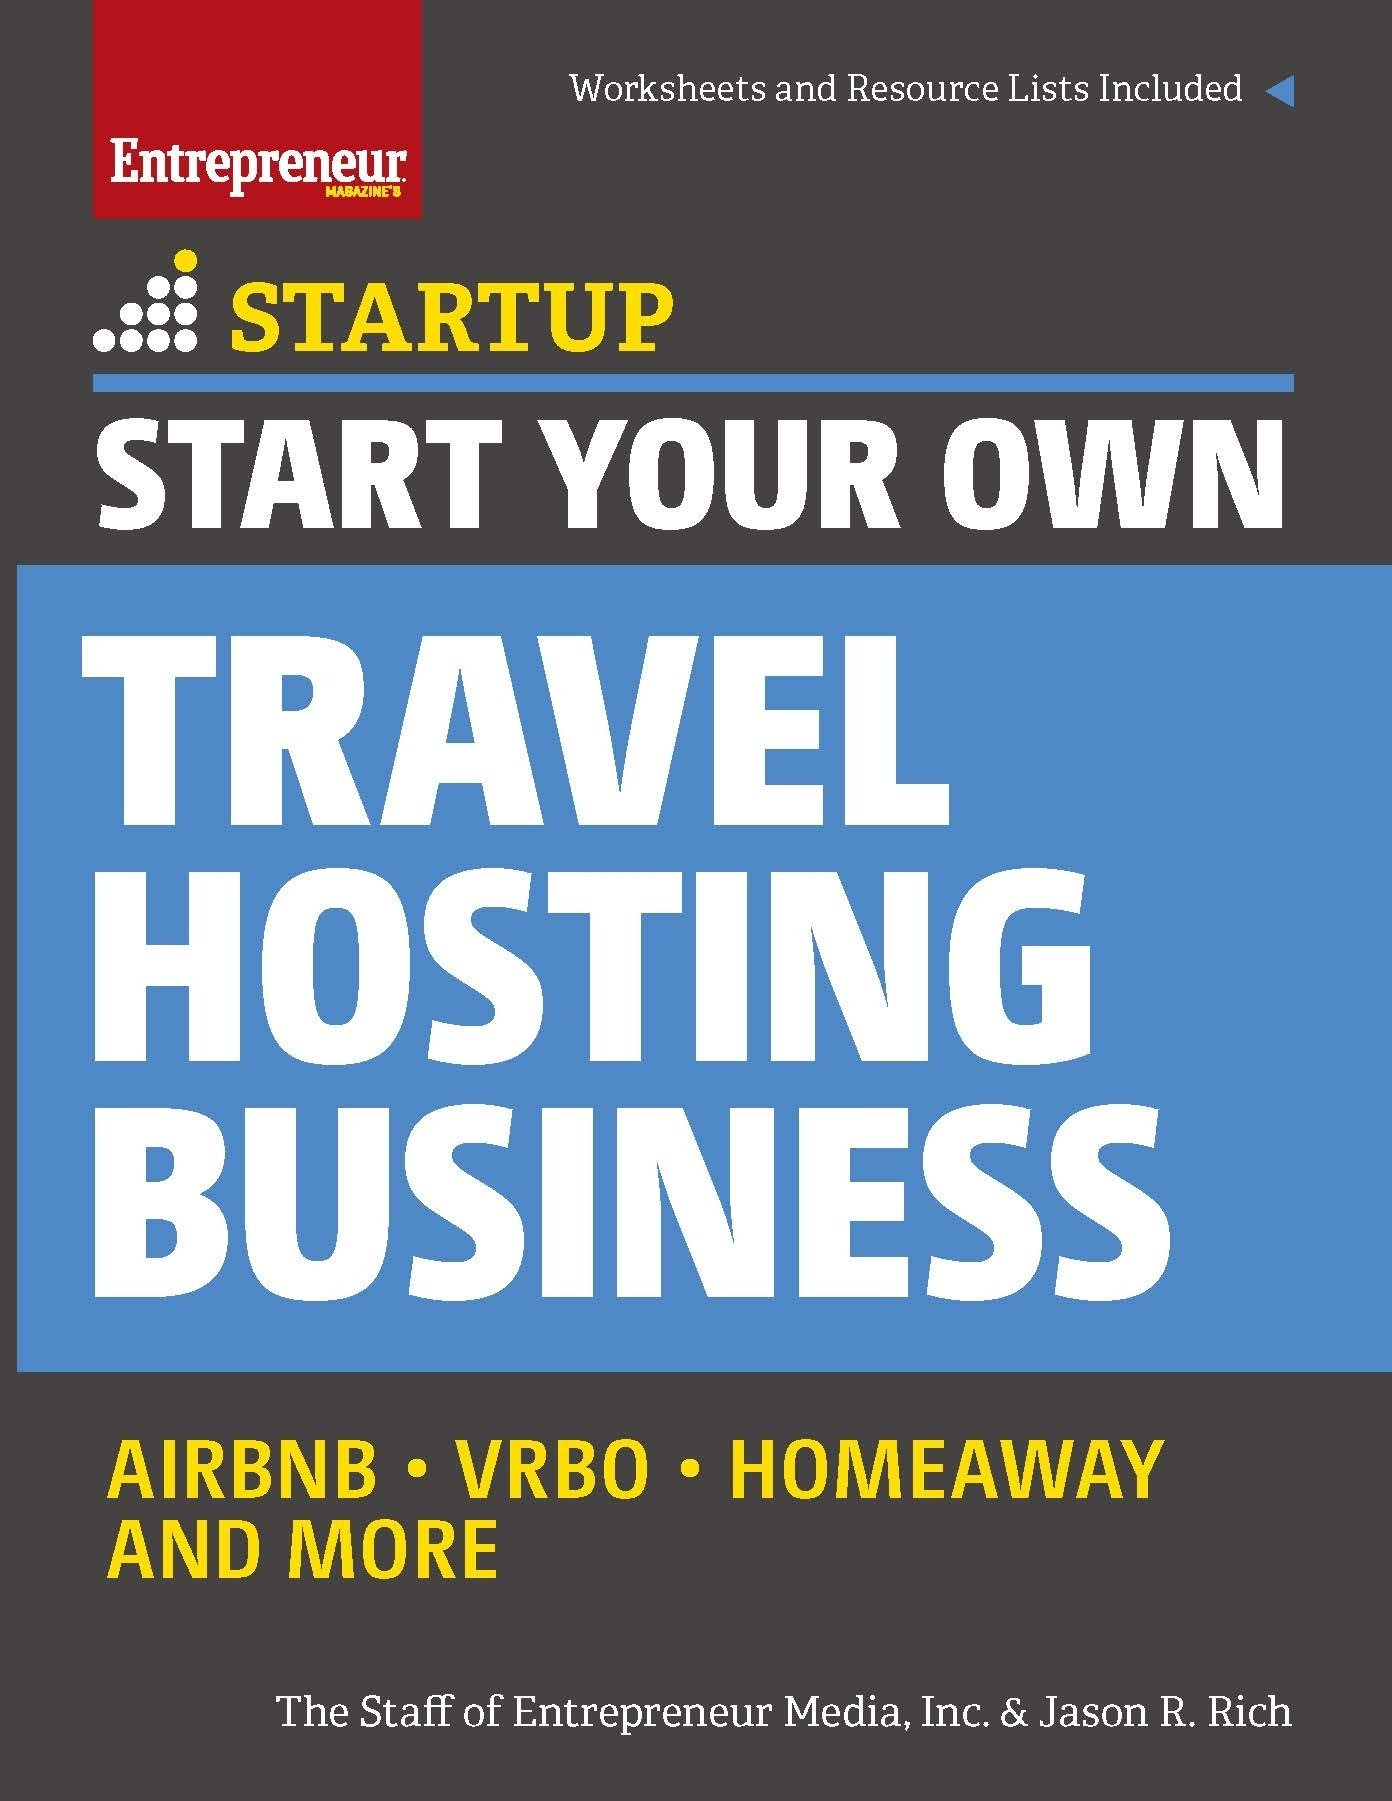 10 Lovable Low Cost Startup Business Ideas start your own travel hosting business new home business ideas with 2020